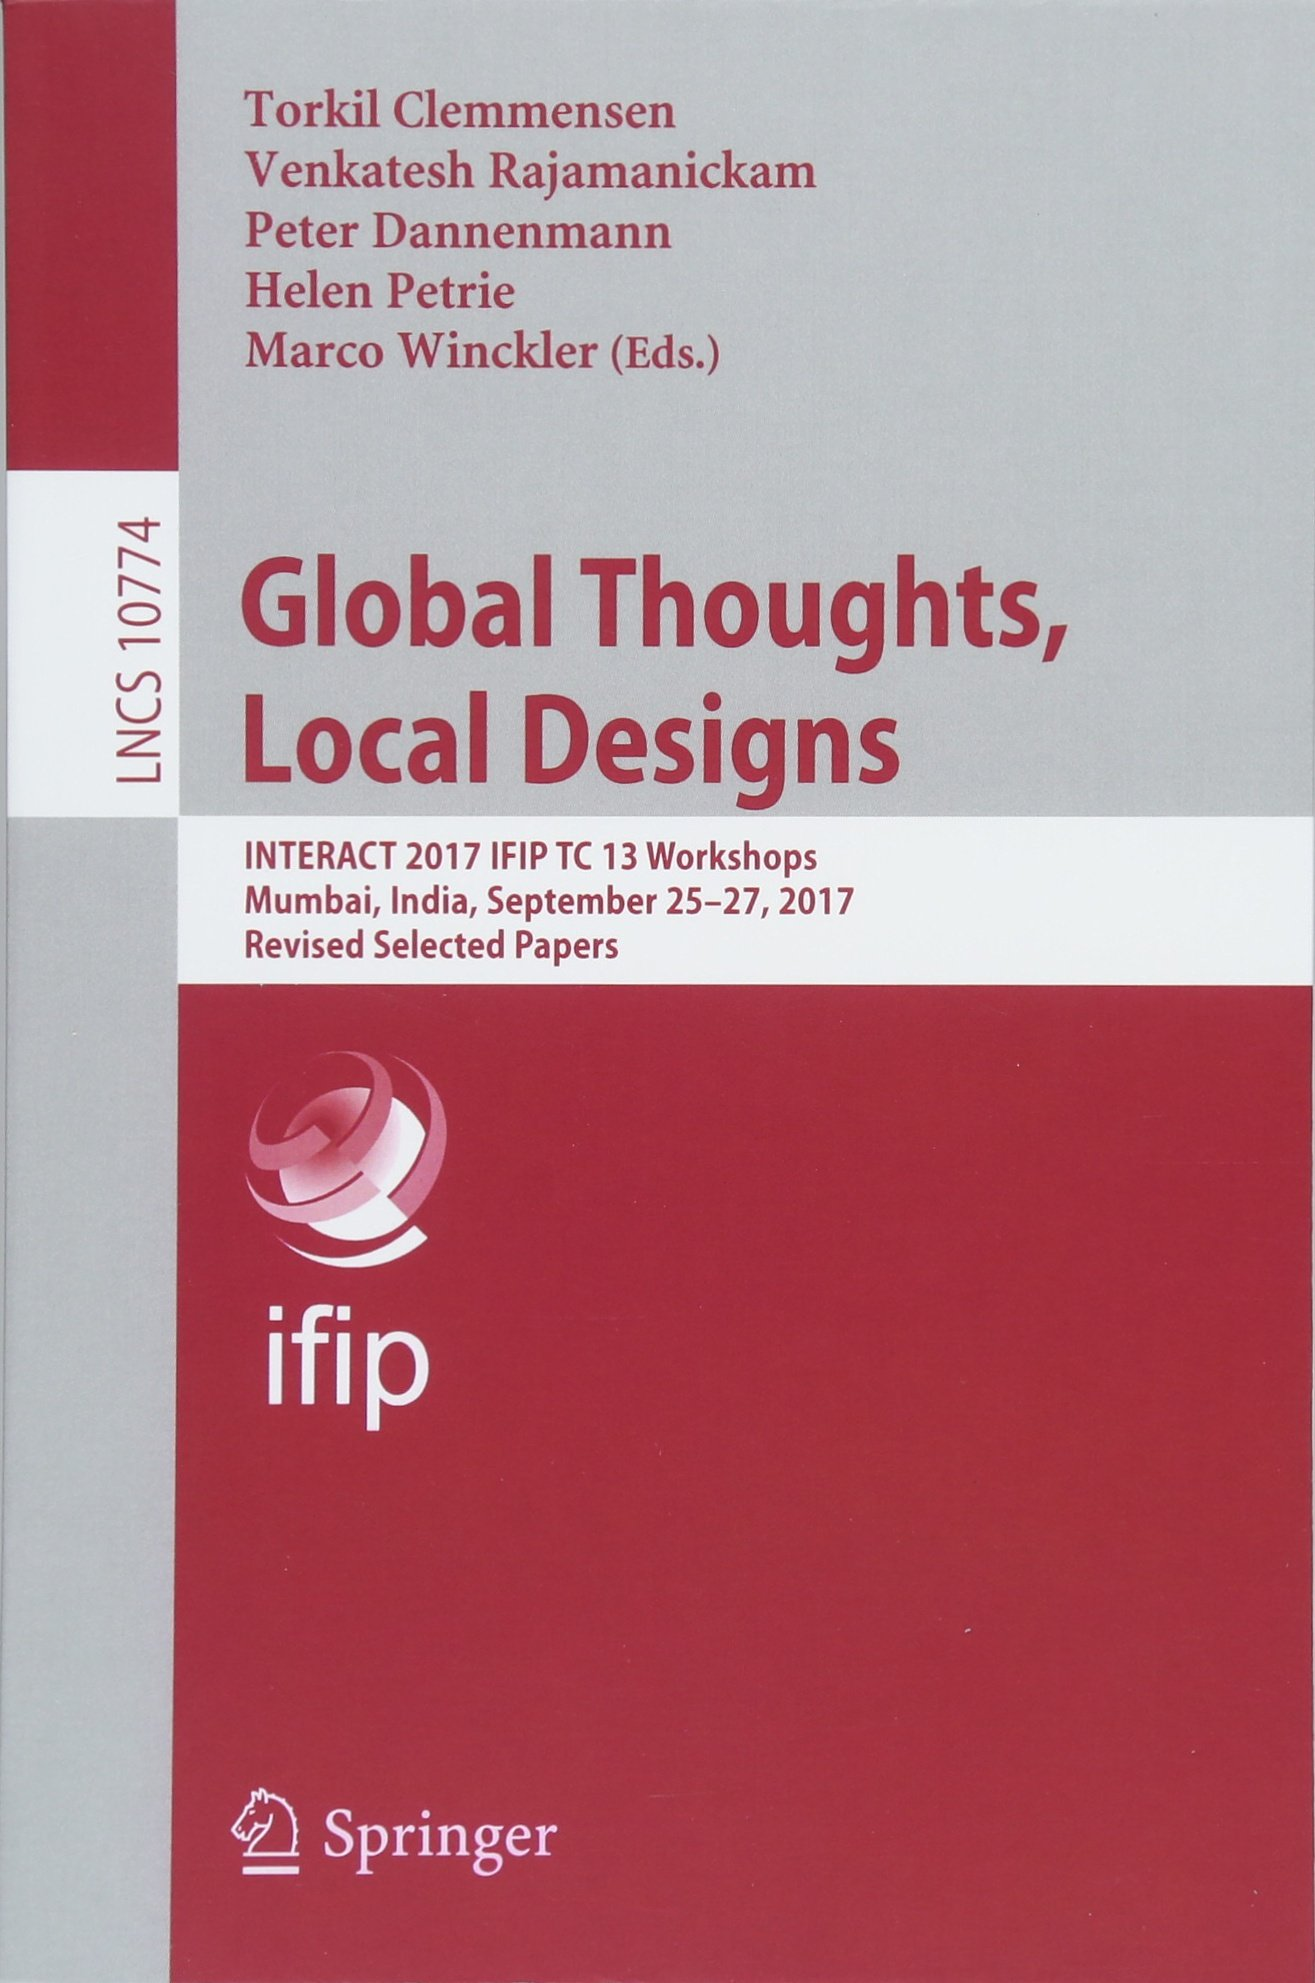 Read Online Global Thoughts, Local Designs: INTERACT 2017 IFIP TC 13 Workshops, Mumbai, India, September 25-27, 2017, Revised Selected Papers (Lecture Notes in Computer Science) PDF